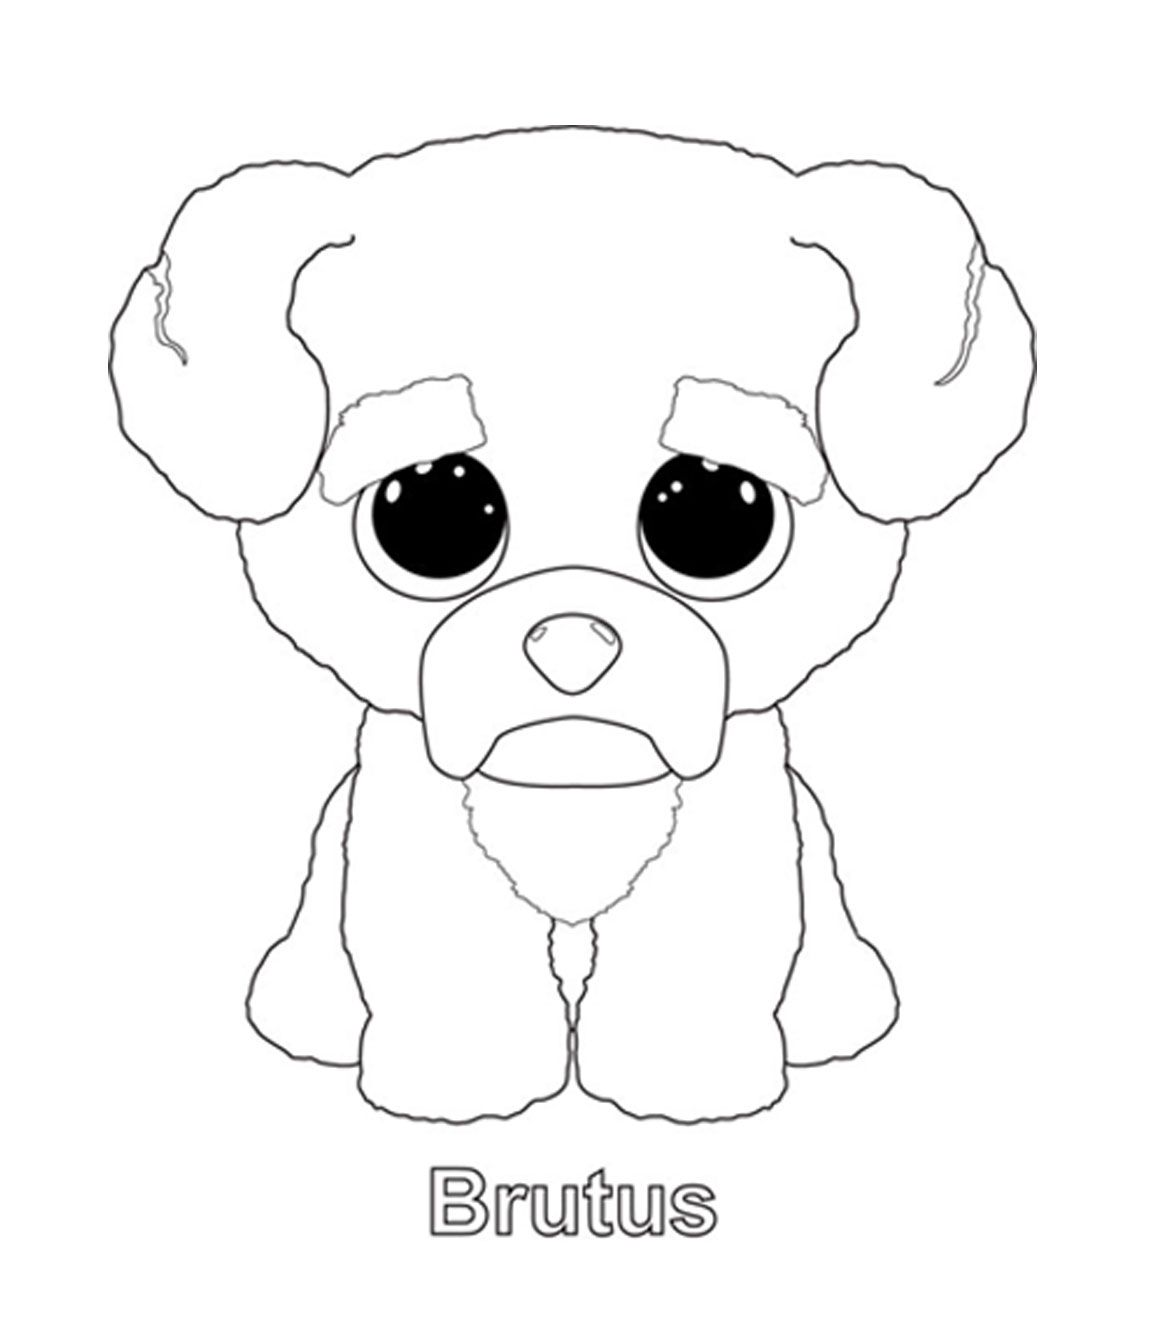 Brutus Coloring Page Beanie Boo Birthdays Penguin Coloring